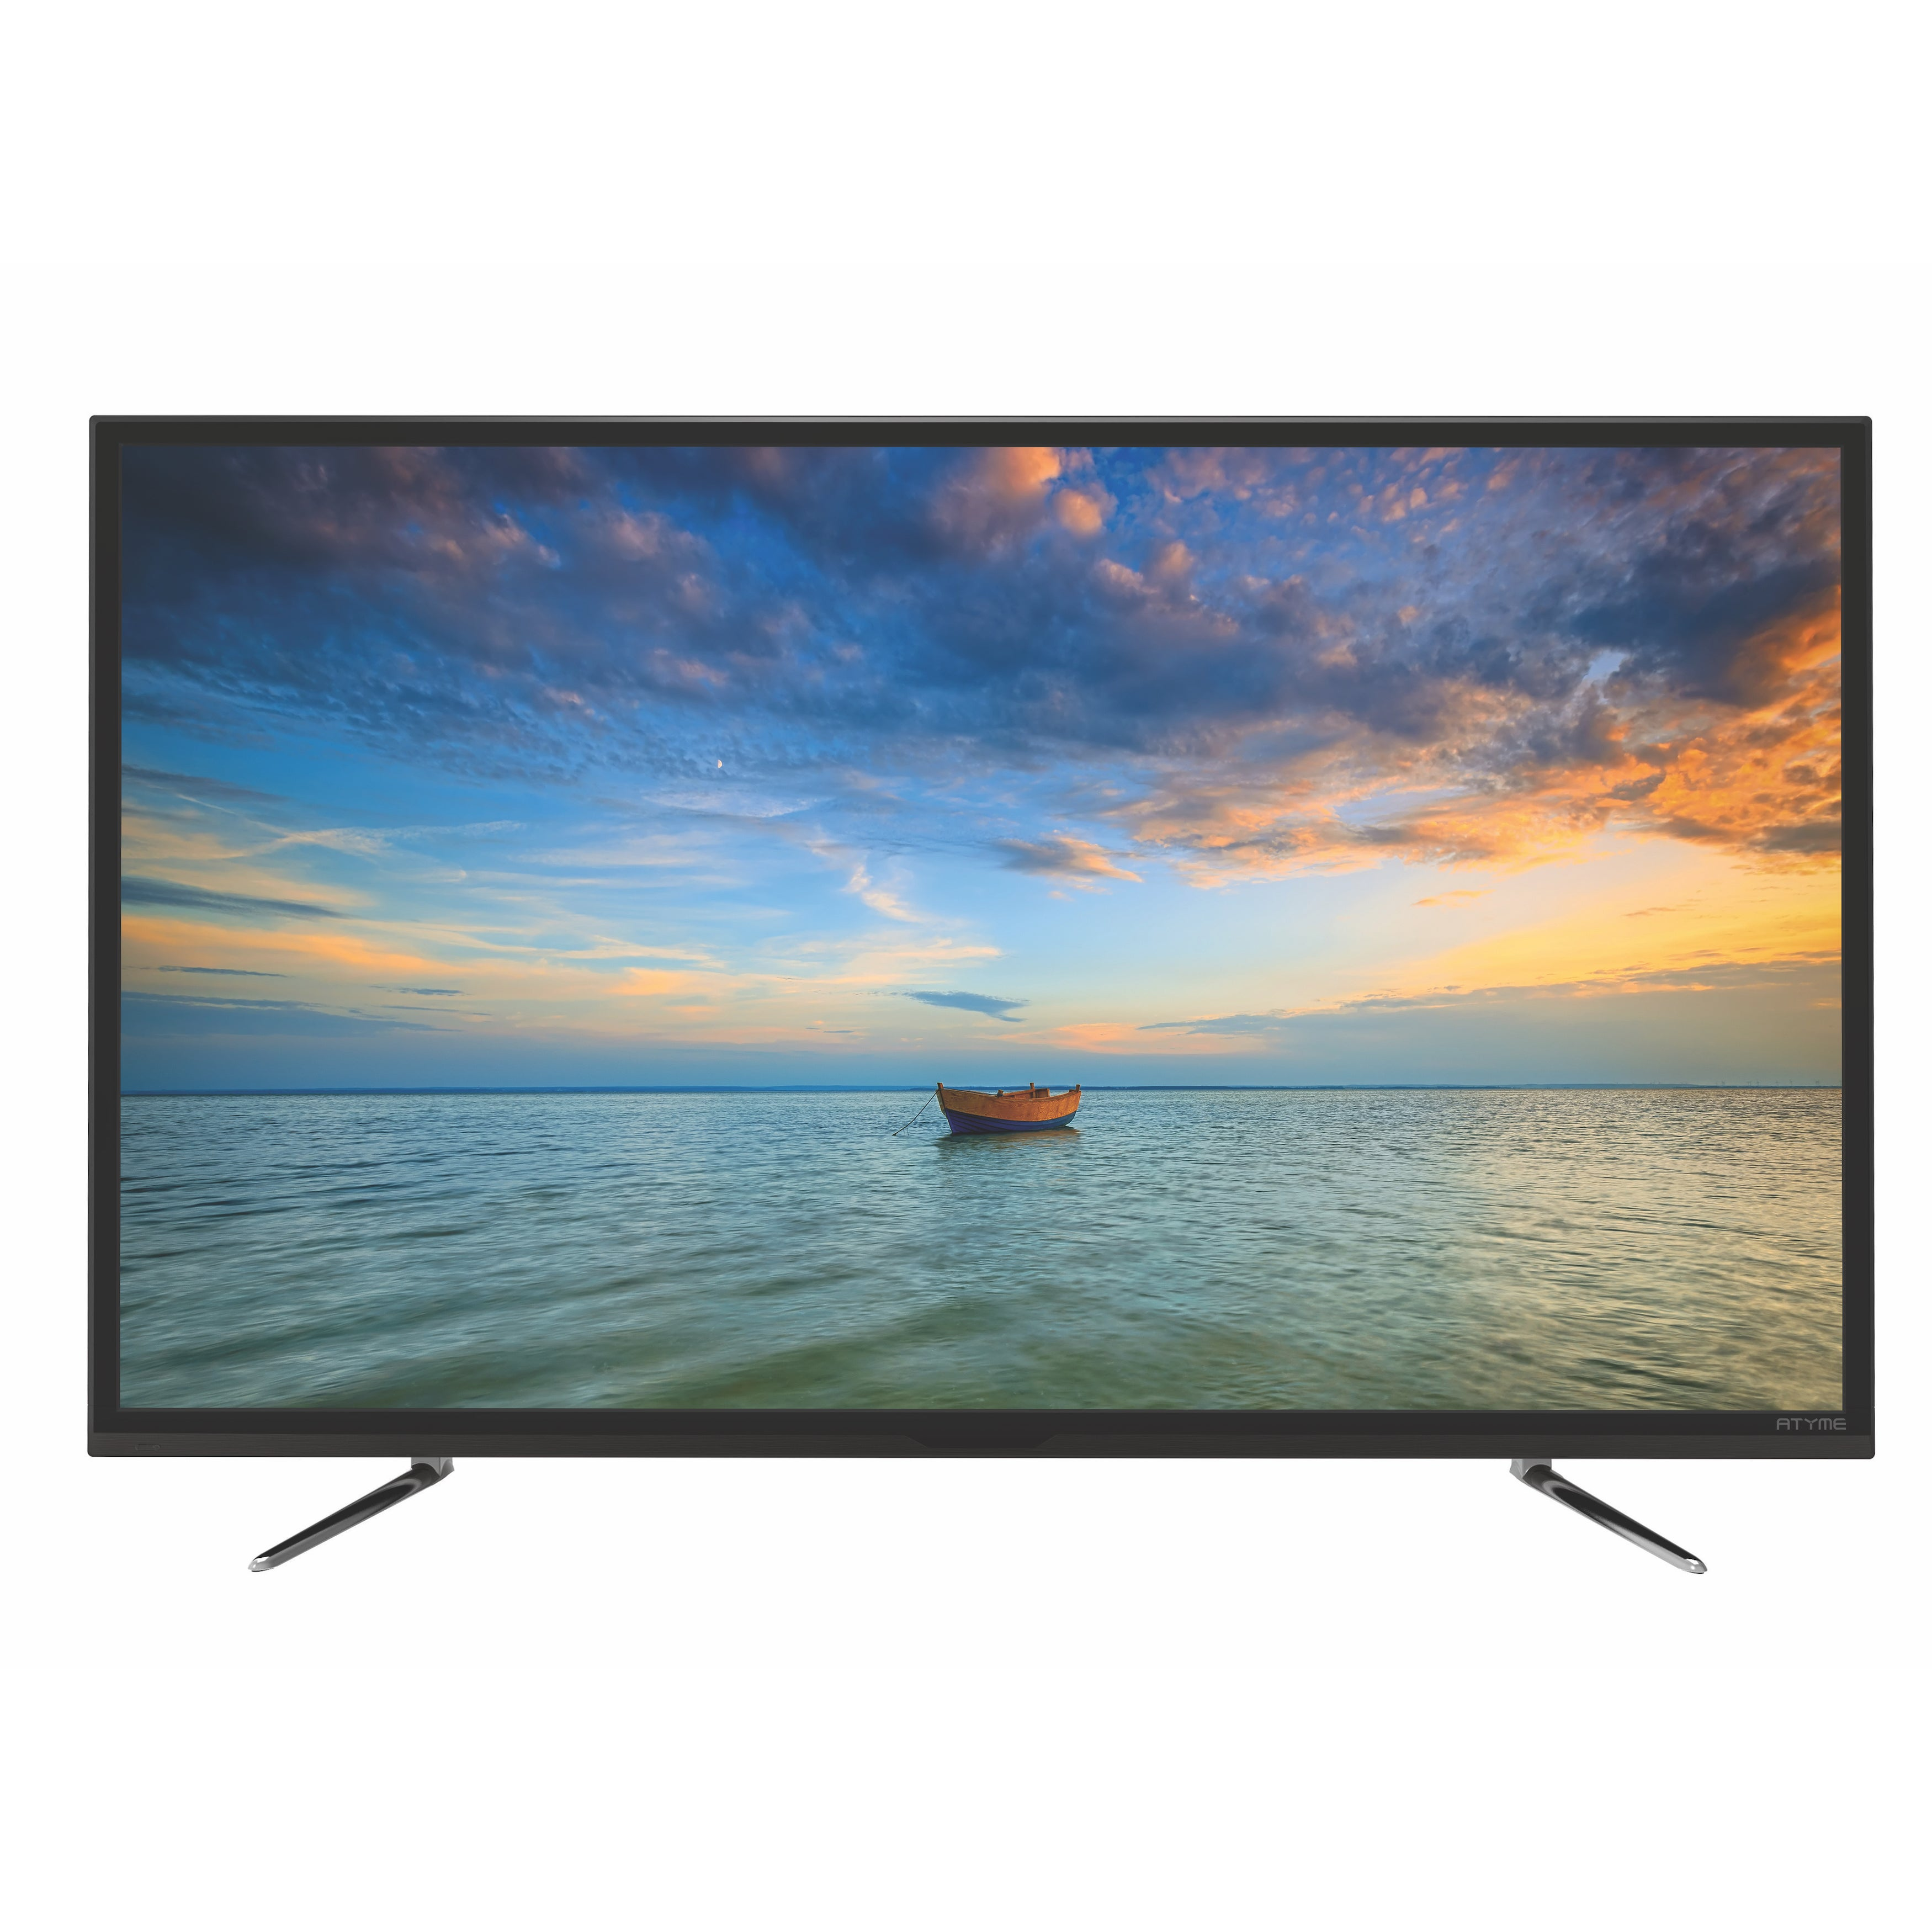 Top Product Reviews for Atyme 65-inch Class 4K UHD 60Hz LED TV ...